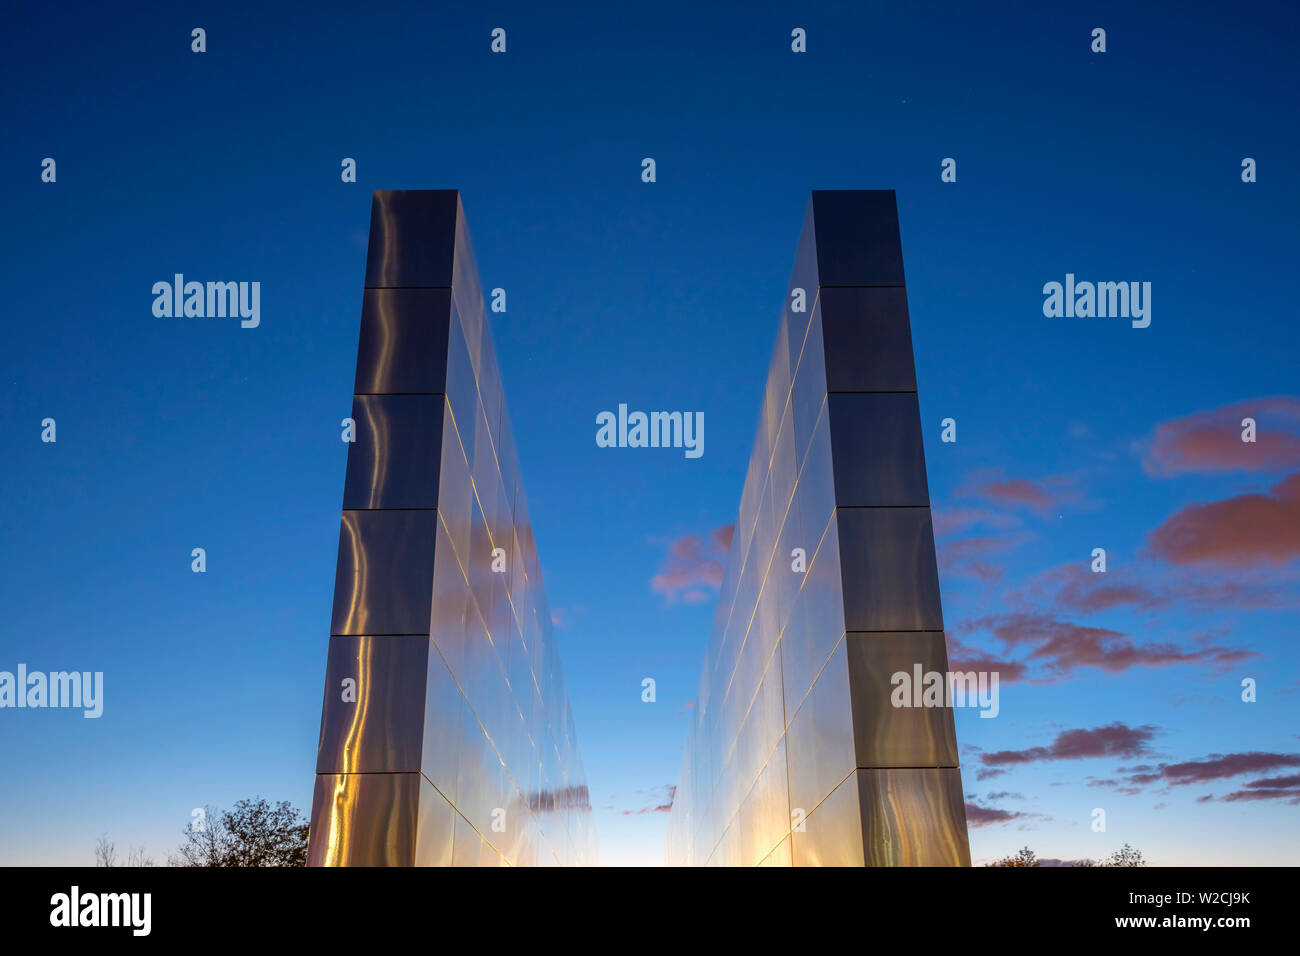 USA, New Jersey, Jersey City, Liberty State Park, Empty Sky memorial to new Jerseyans lost during 911 attacks on the World Trade Center - Stock Image